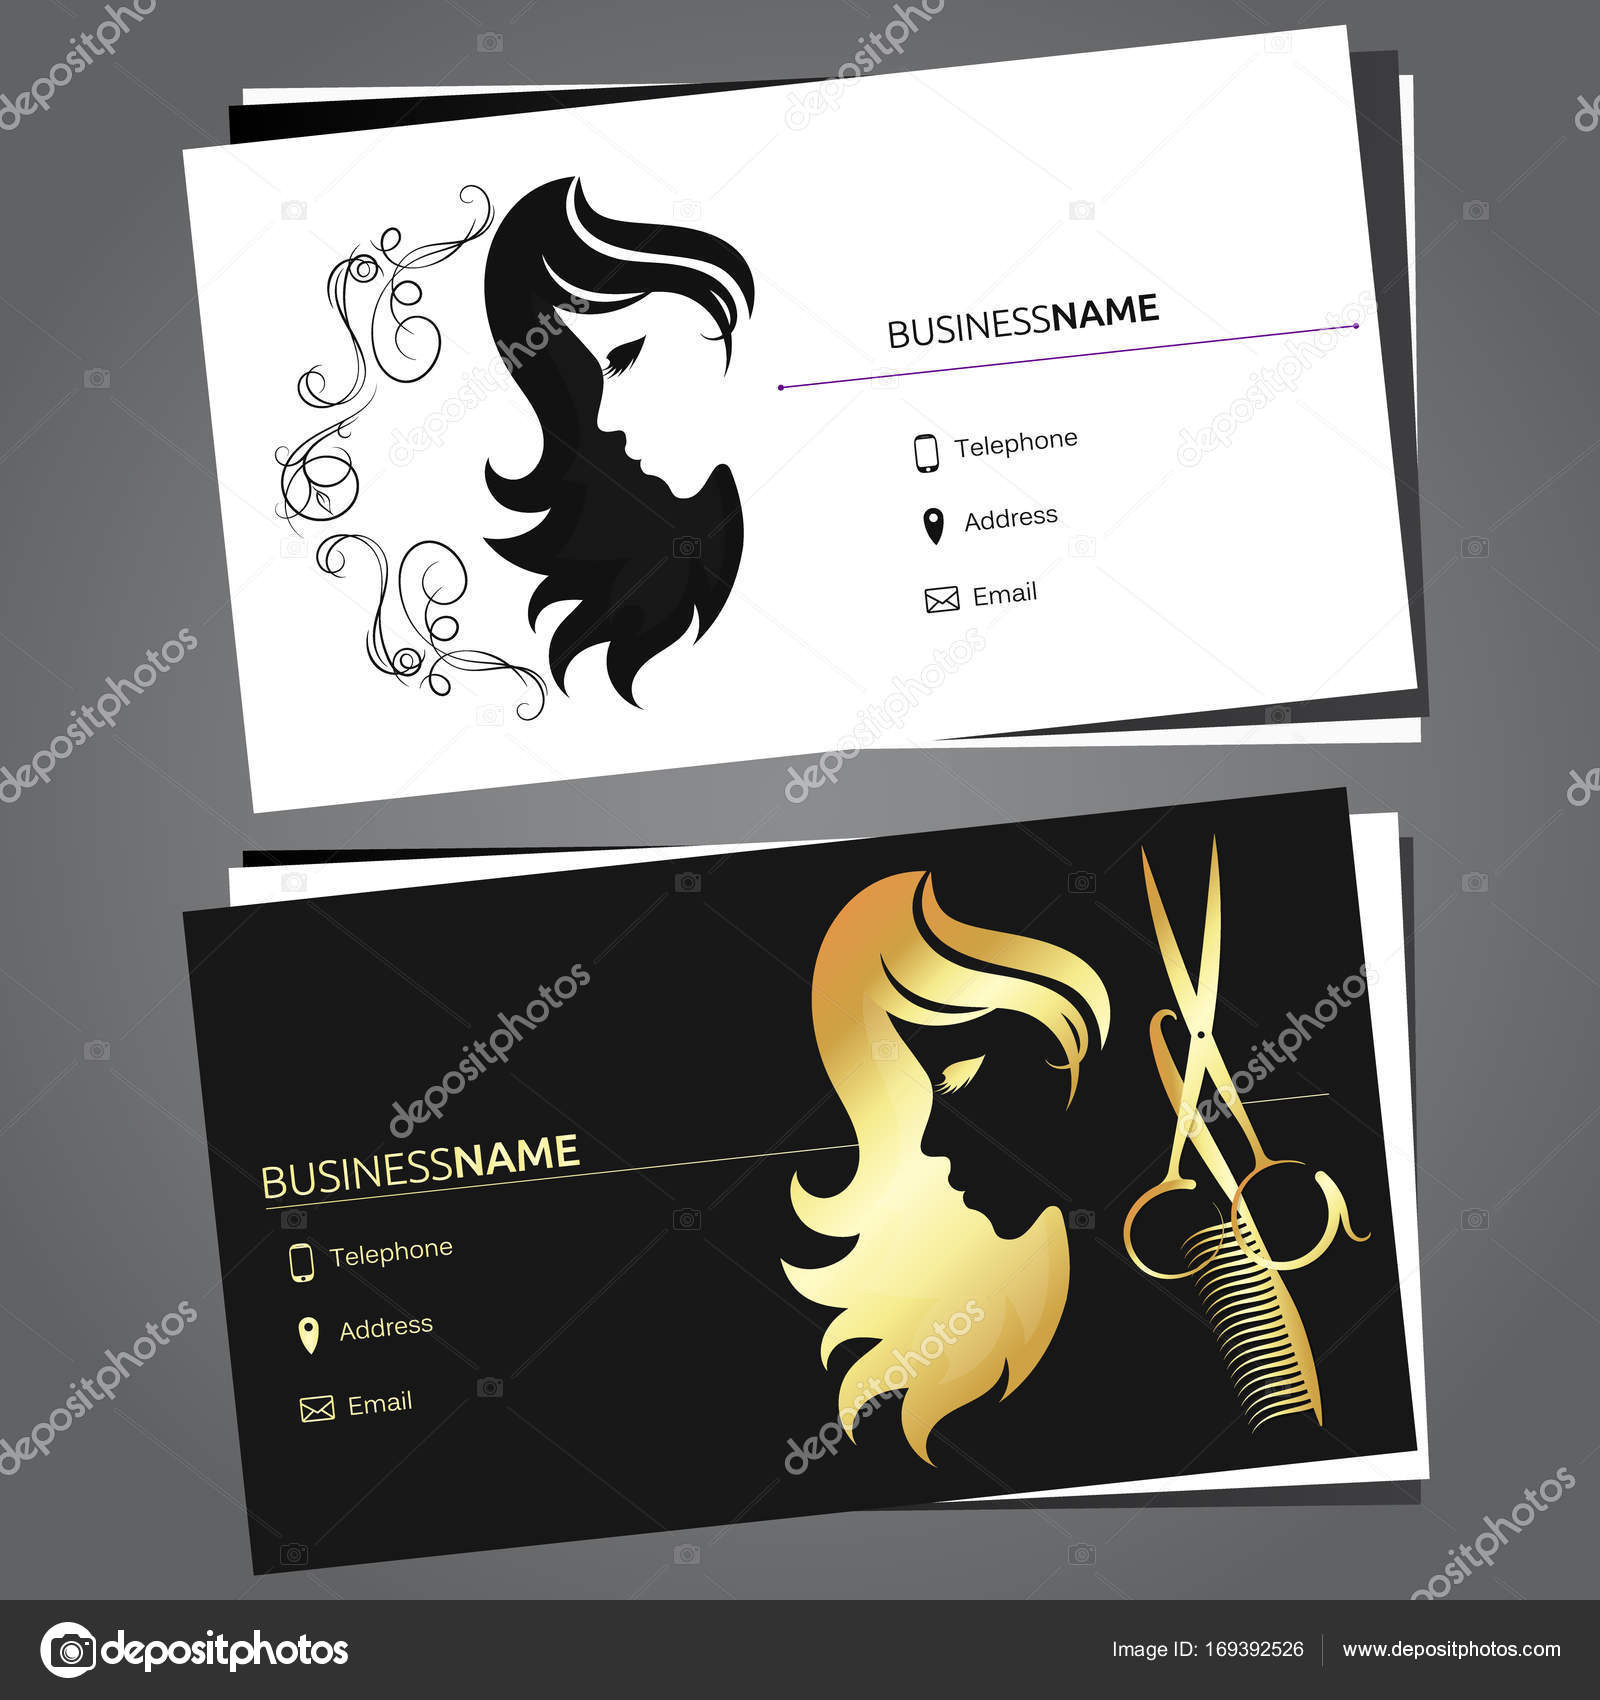 Business card for beauty salon — Stock Vector © john1279 #169392526